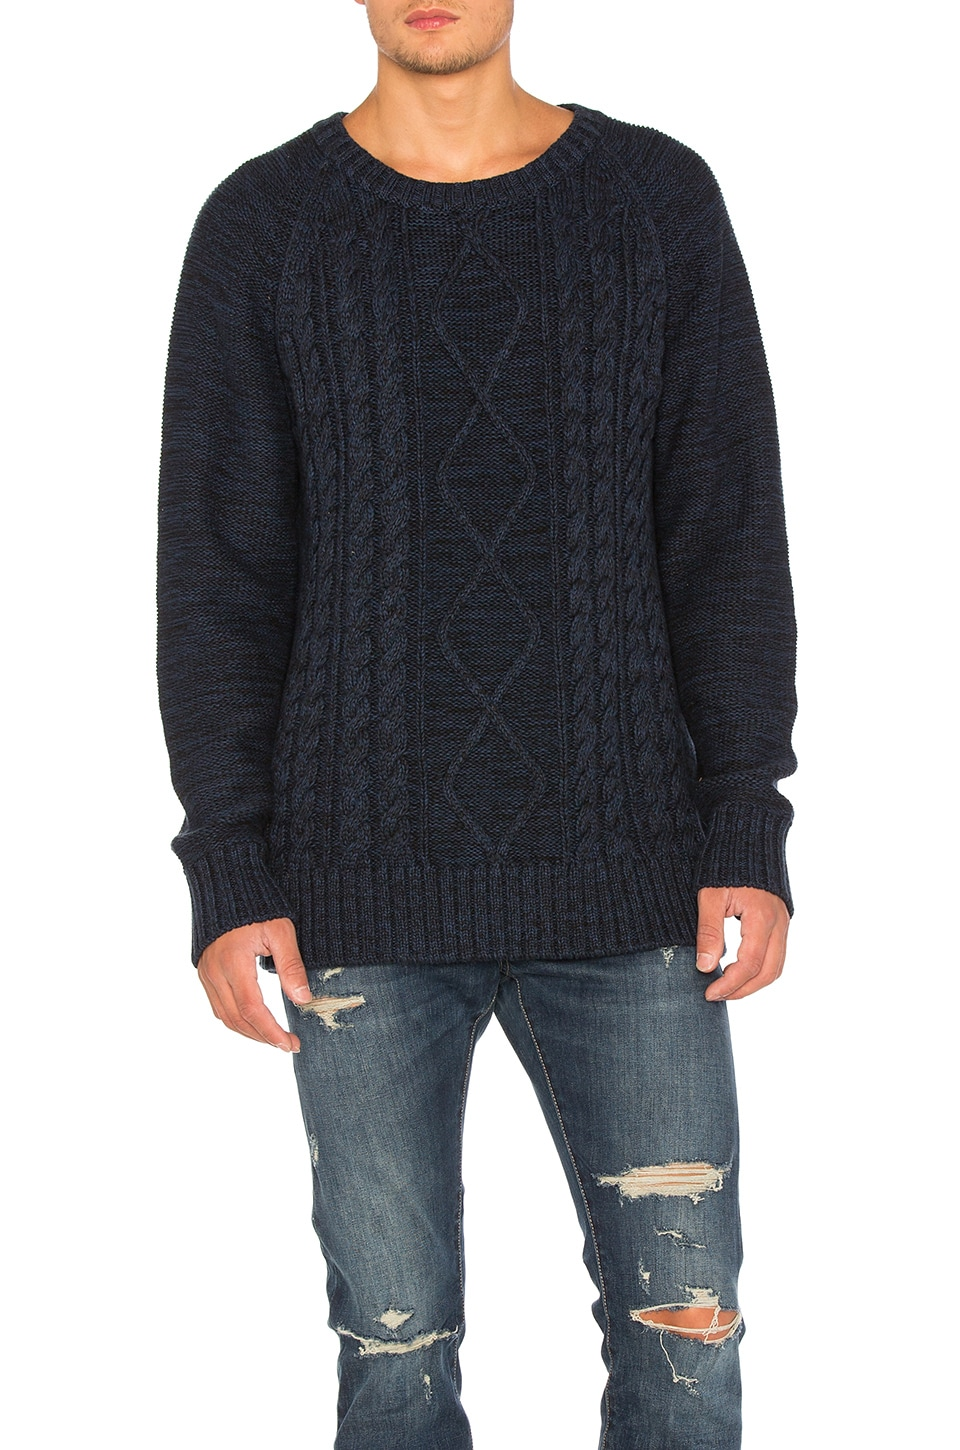 NEUW Cable Knit Sweater in Navy Melange | REVOLVE